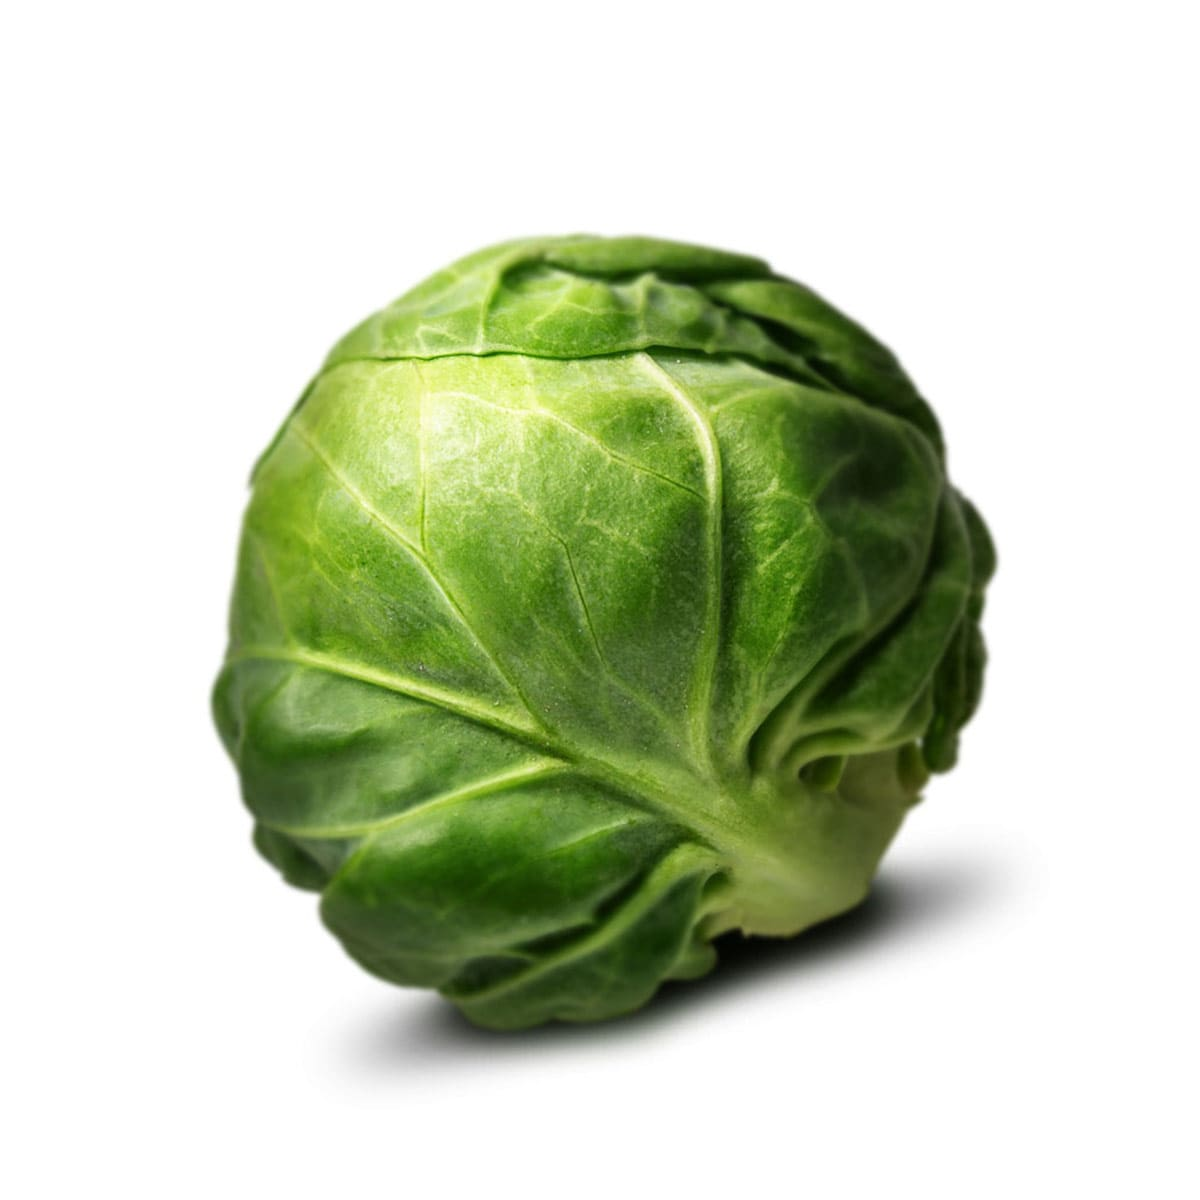 brussel-sprout-centered-min